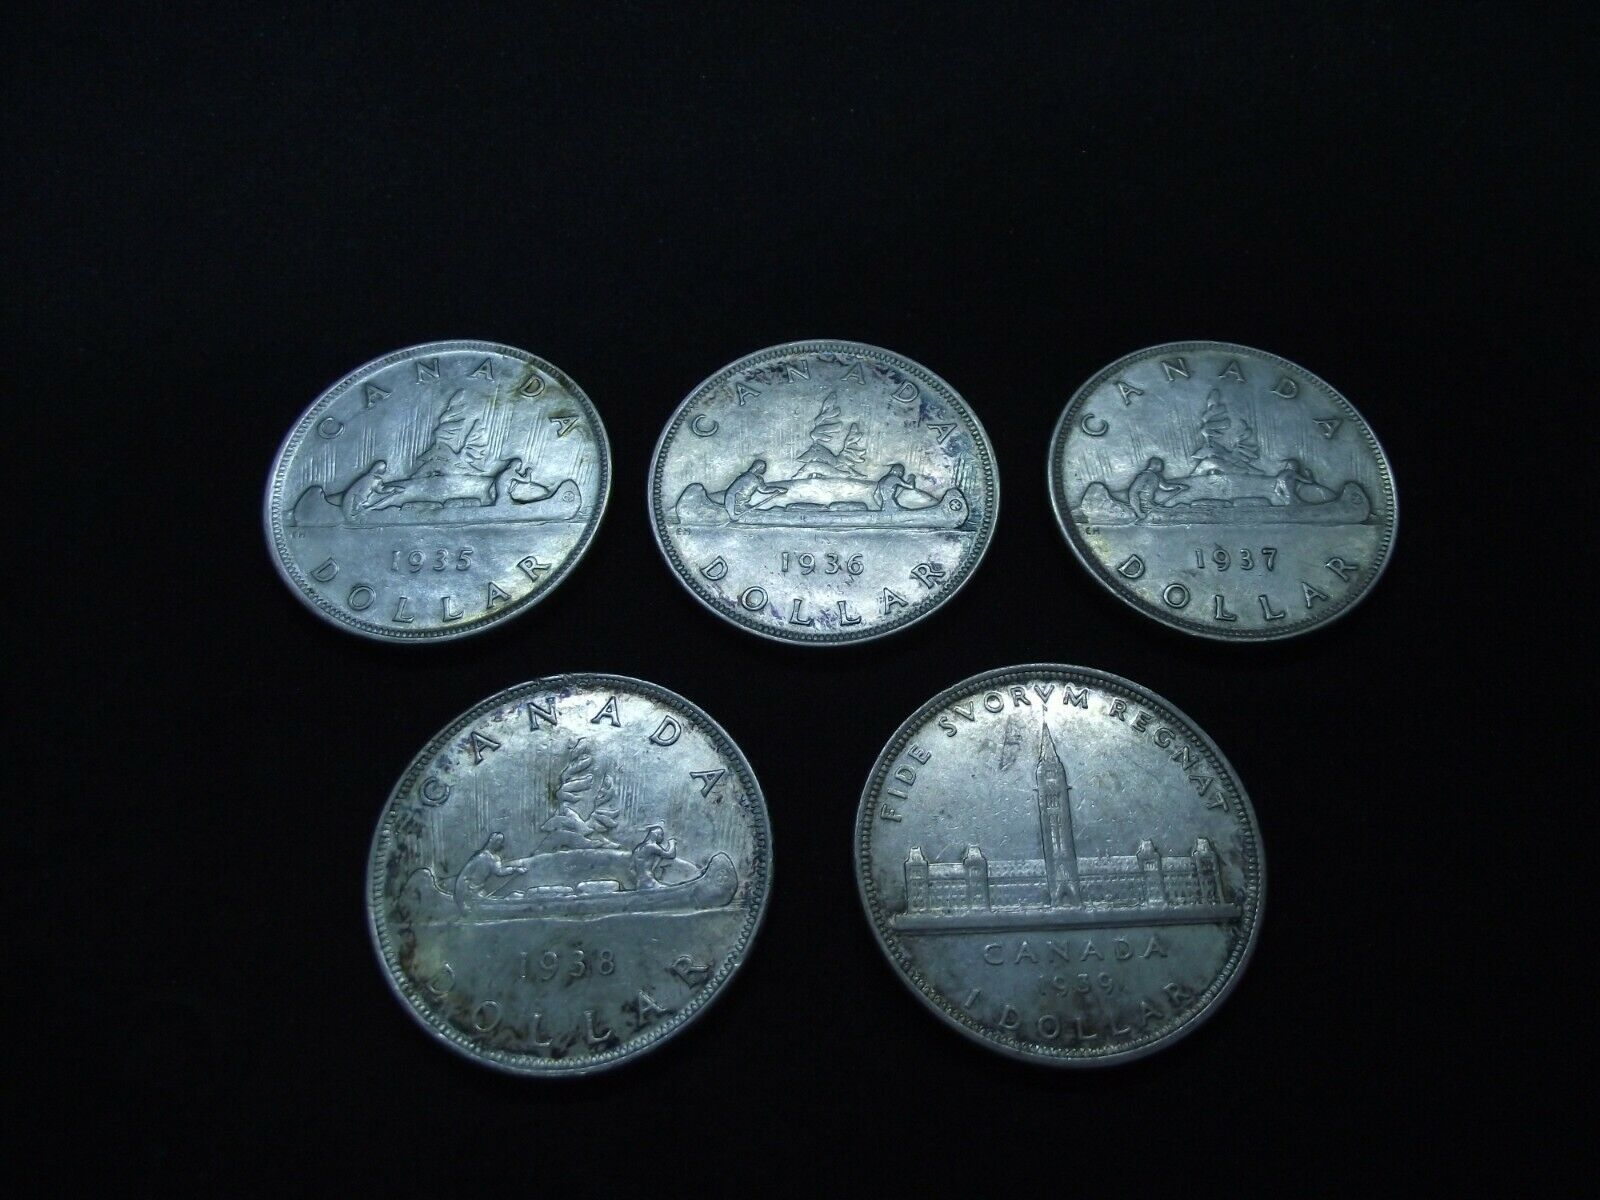 5 Canadian Silver Dollars 1935-36-37-38 & 1939 Без бренда